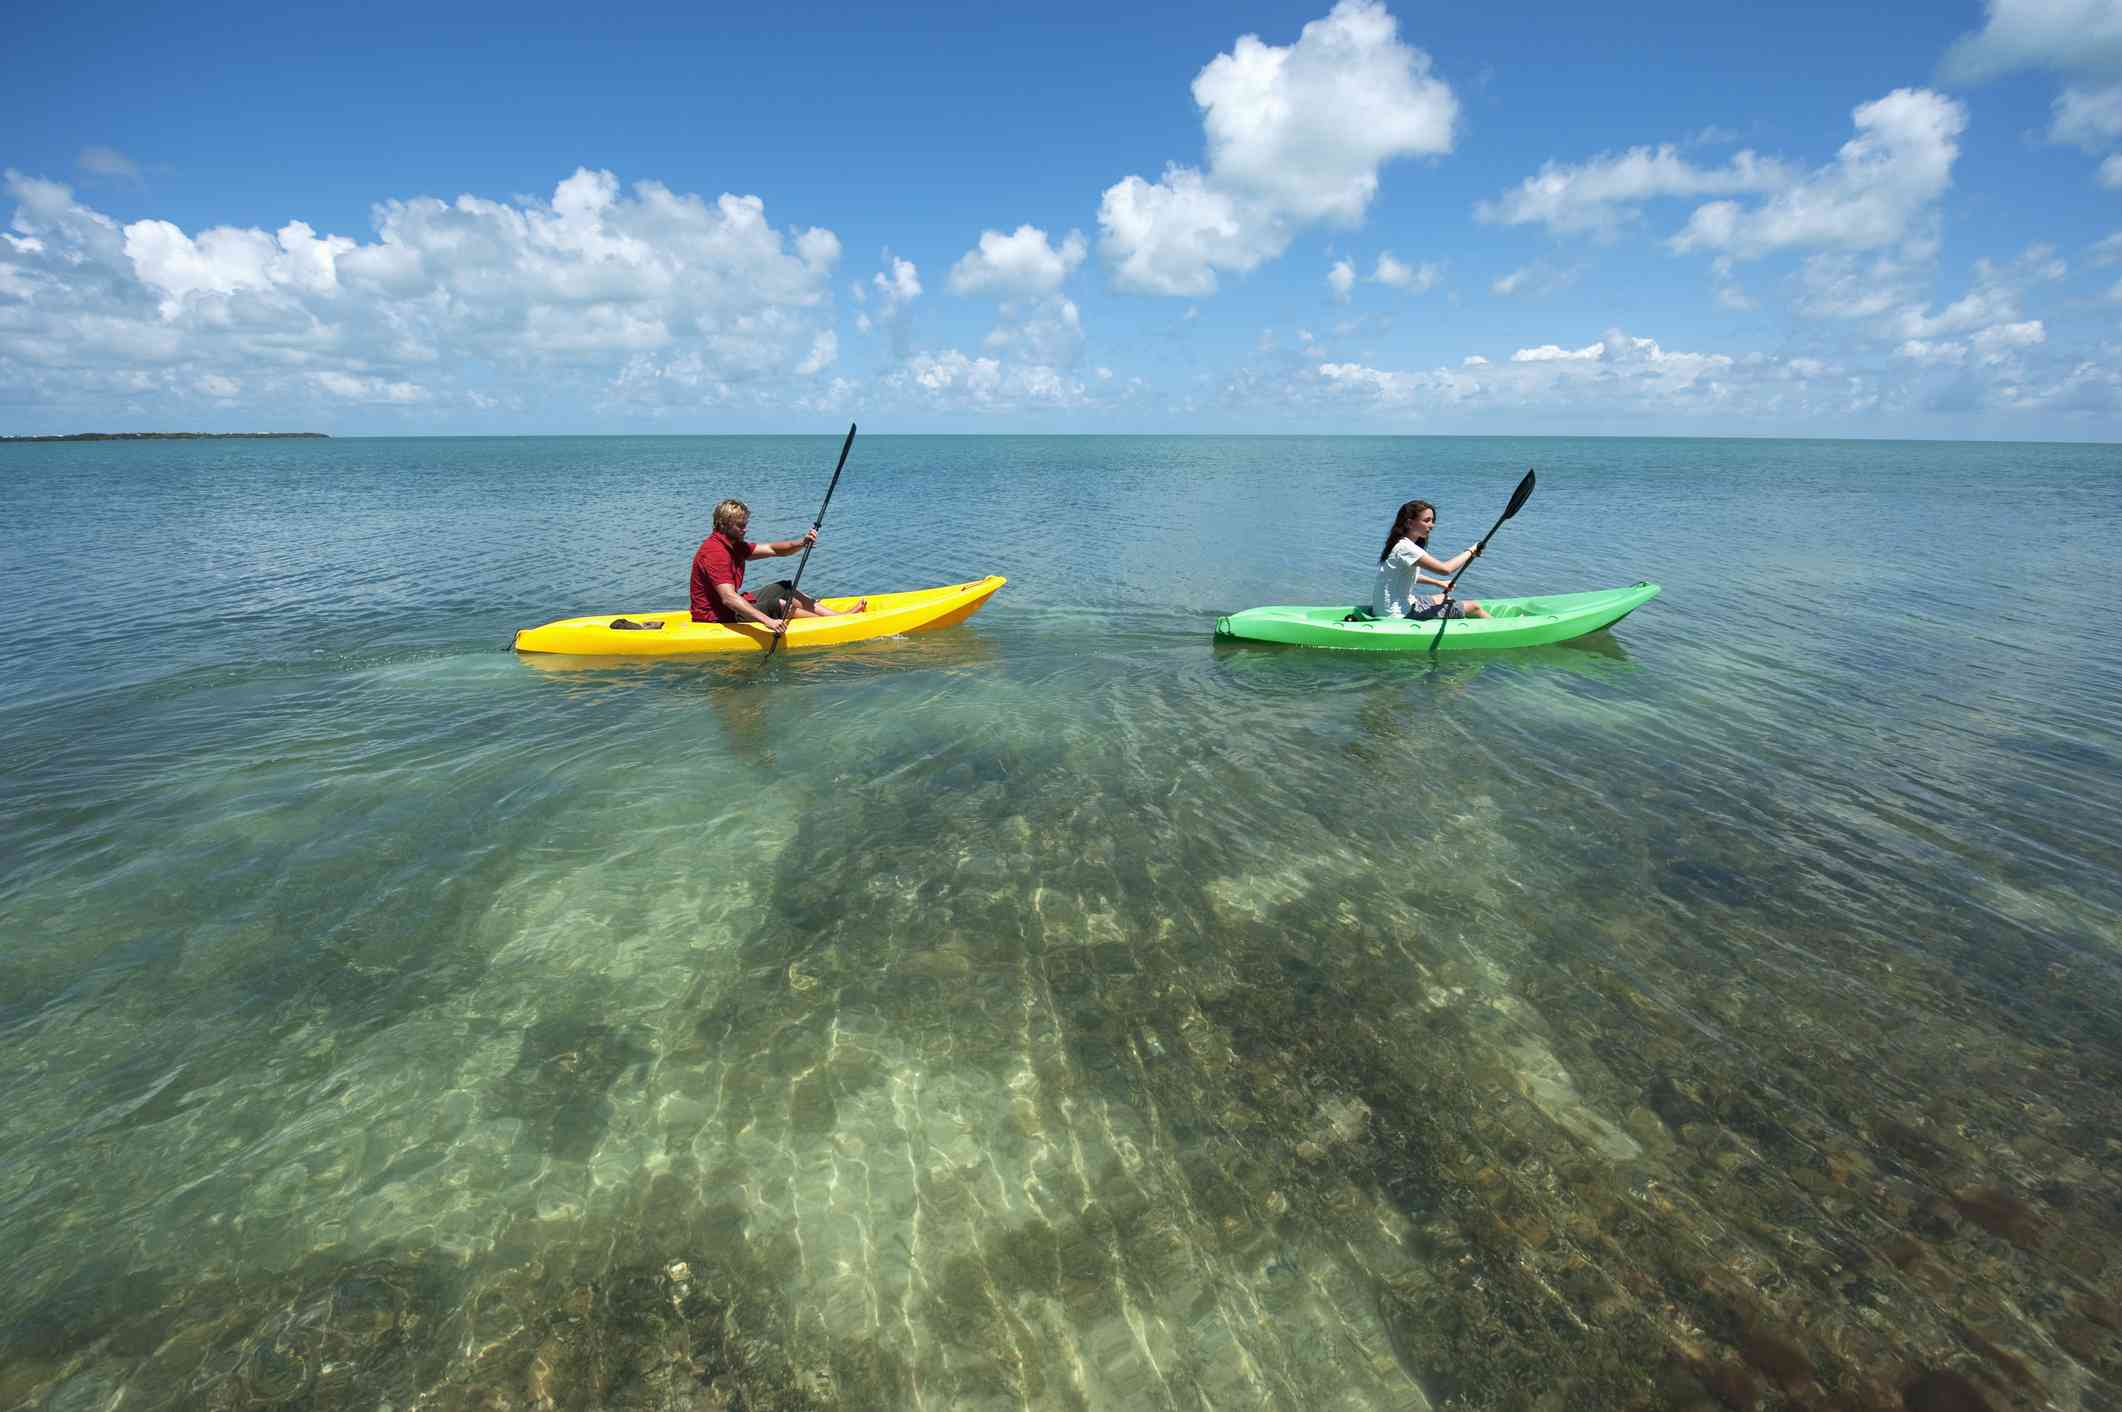 Water Adventure Excursion in Key West